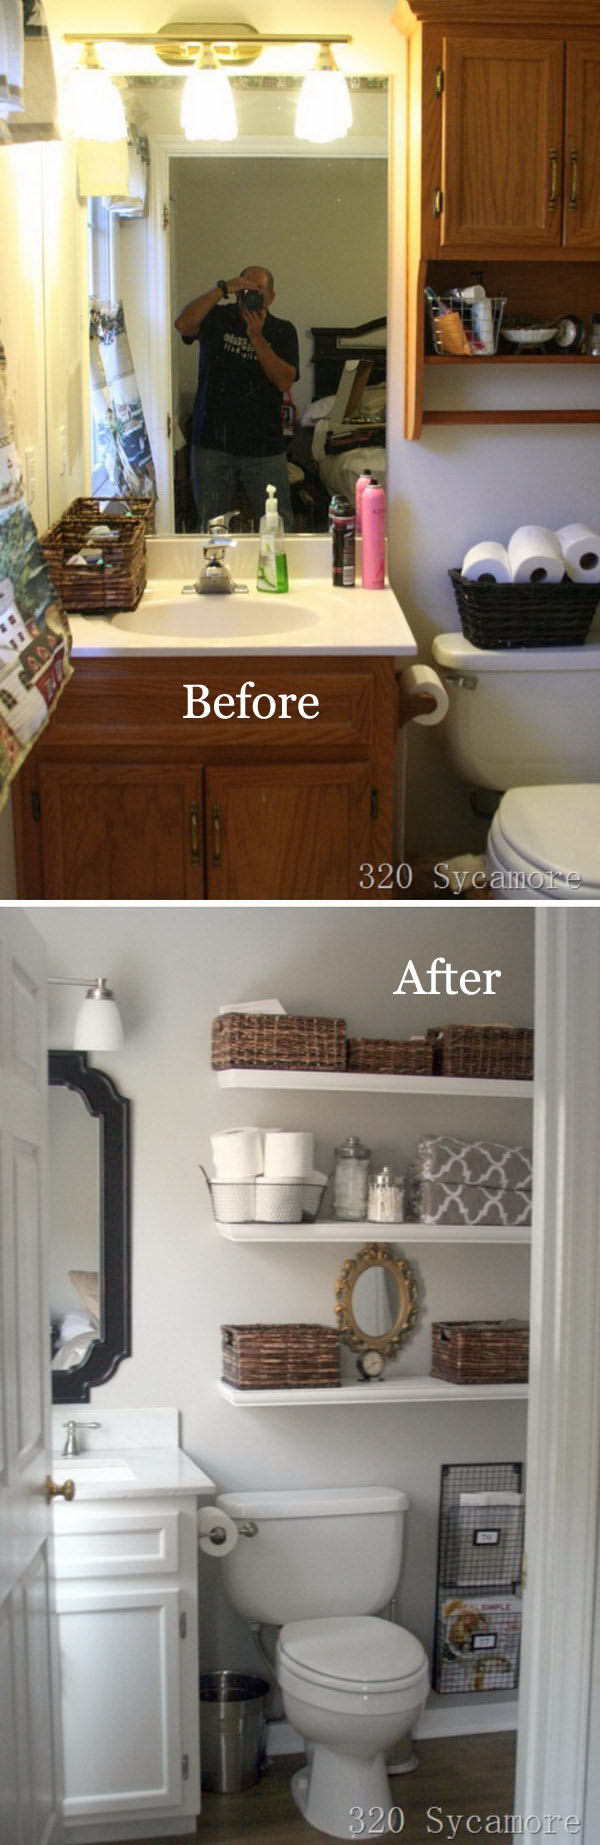 17-18-bathroom-remodel-before-and-after